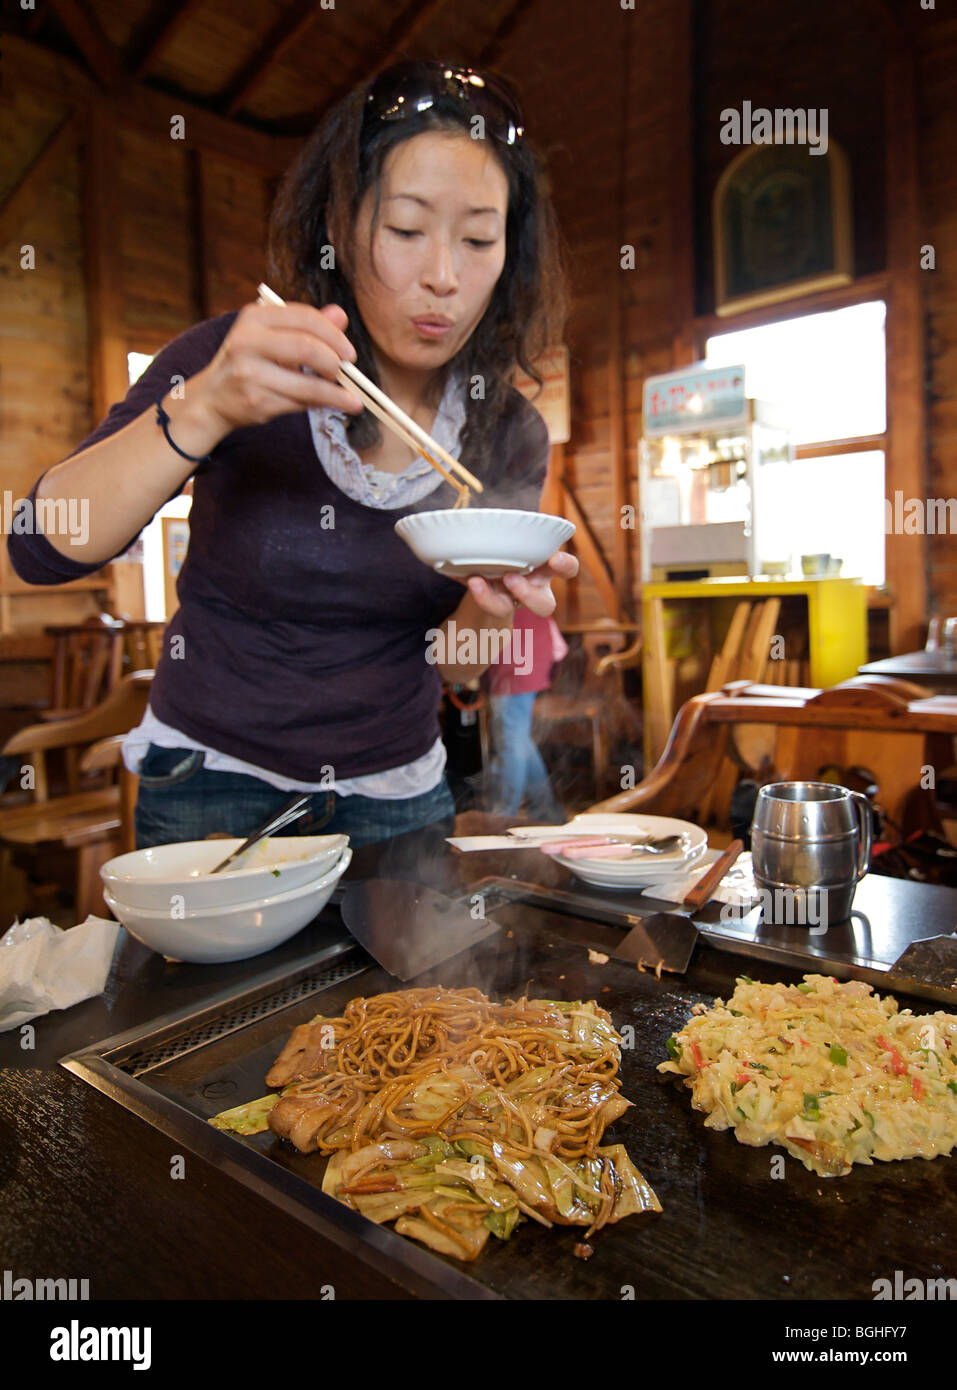 Okonomi yaki. Japanese style savoury pancakes being cooked on a hot plate. Japan - Stock Image